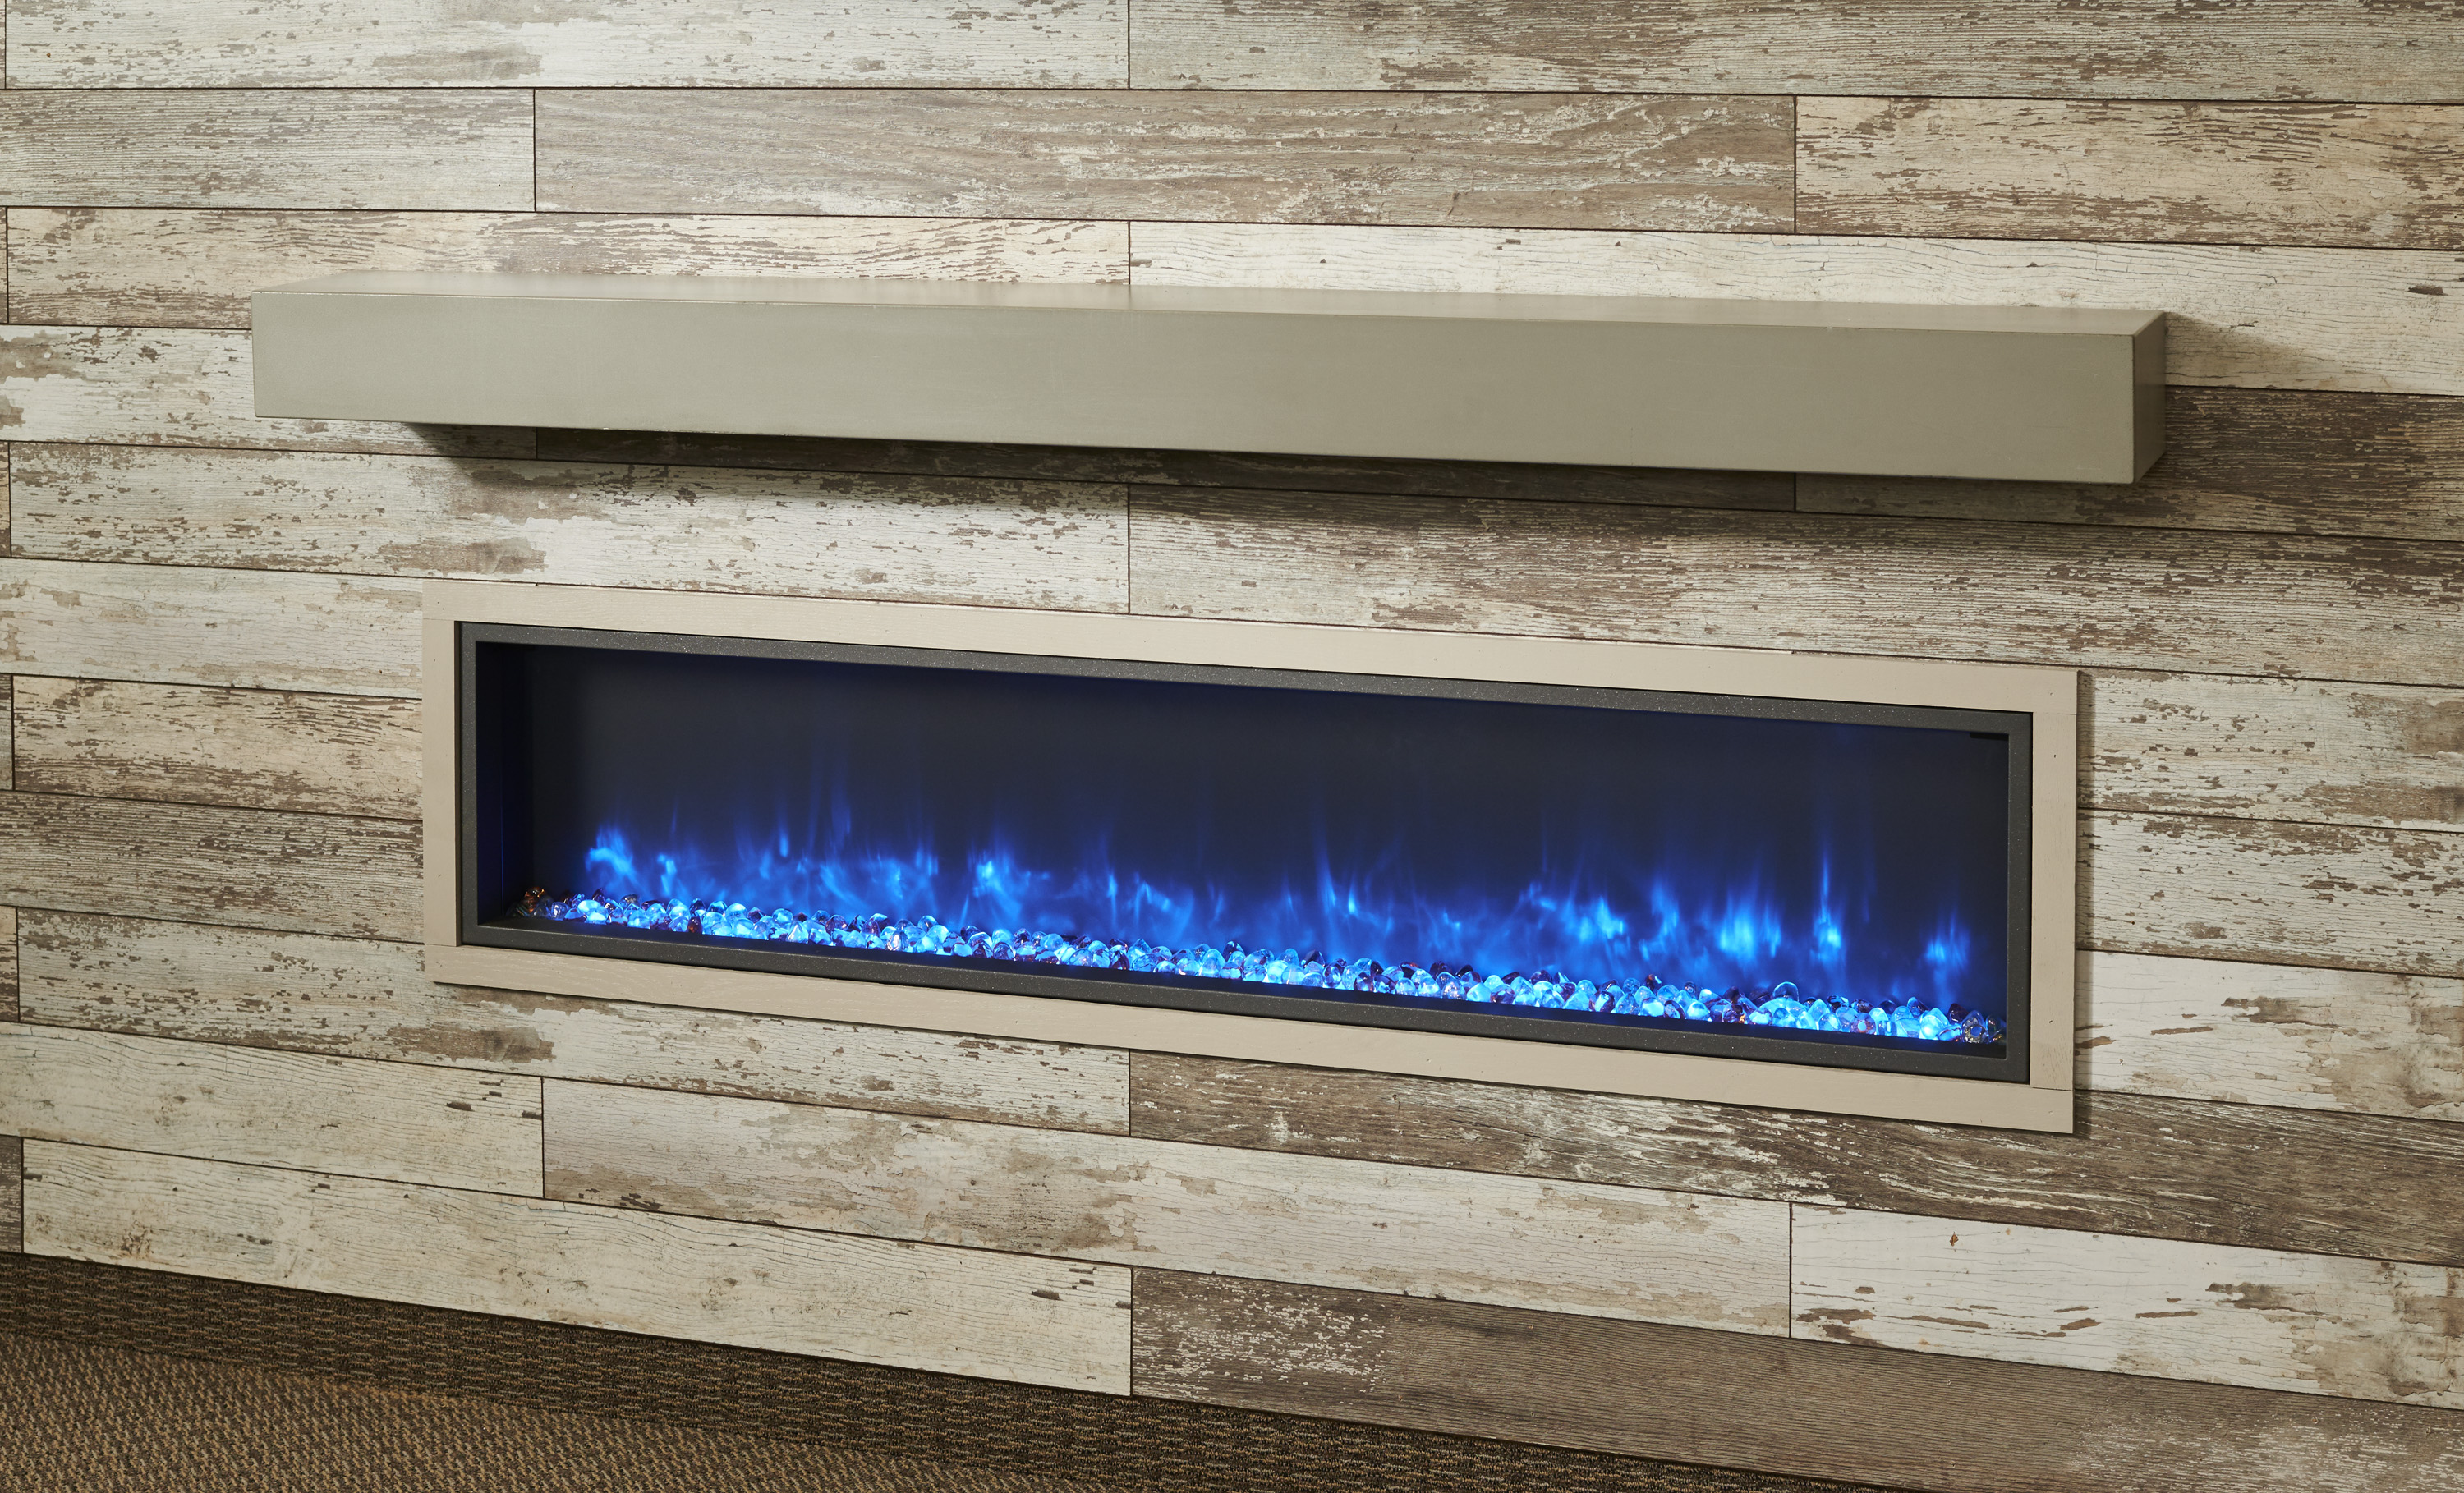 Pictures Of Electric Fireplace Inserts Product Update: Non-combustible Supercast Mantel